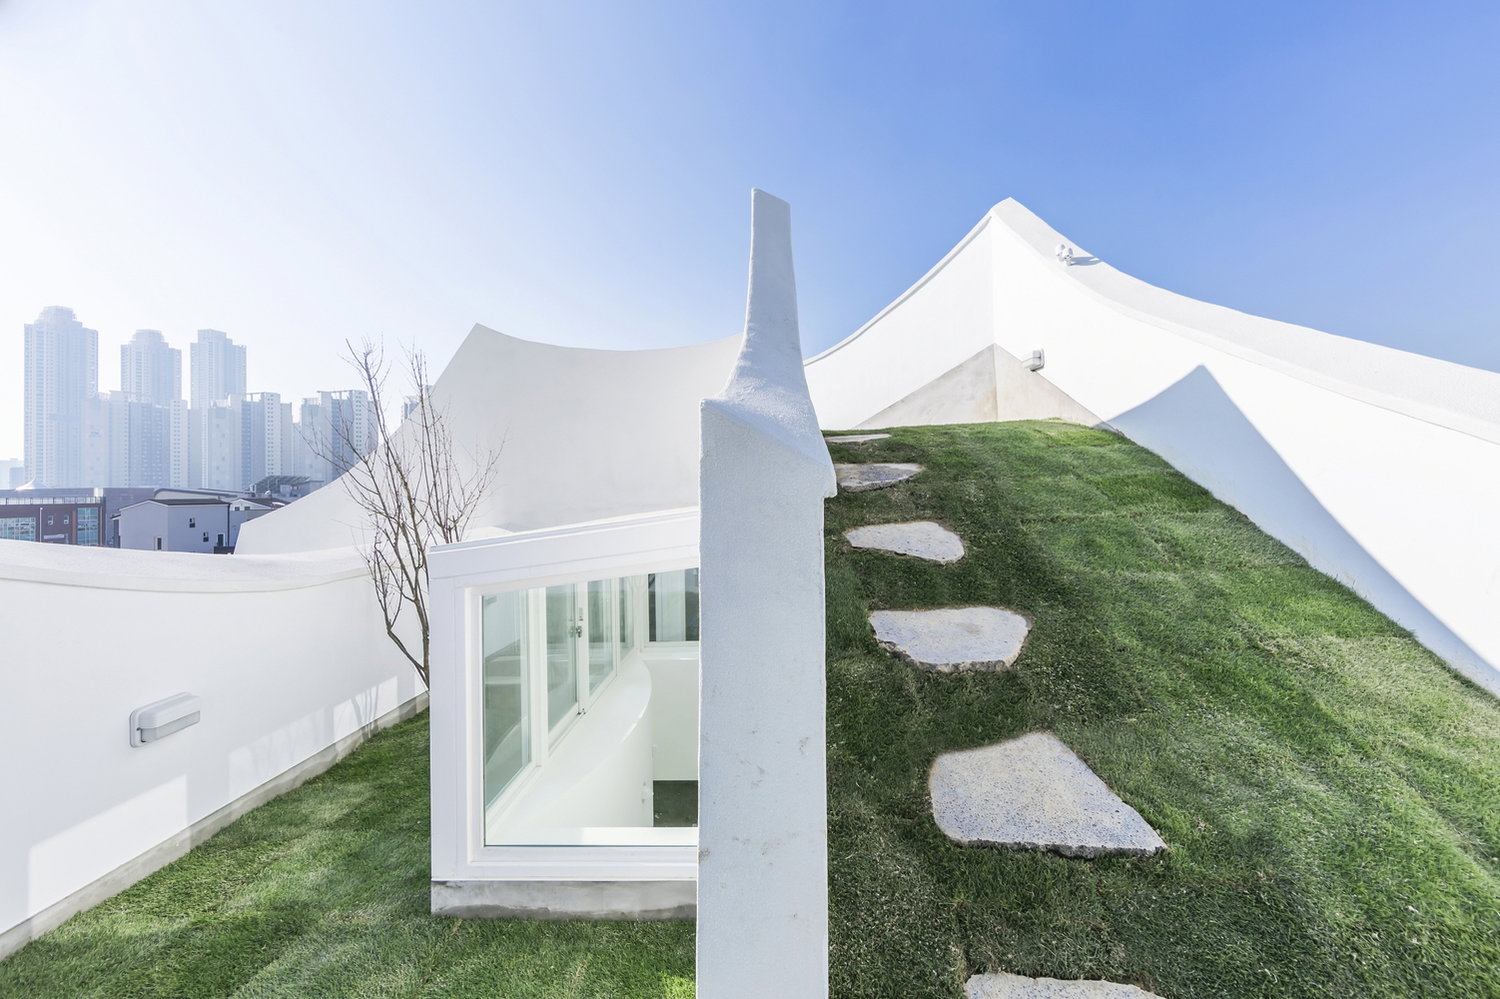 The architecture of the house reminds of flying and instability during the flight